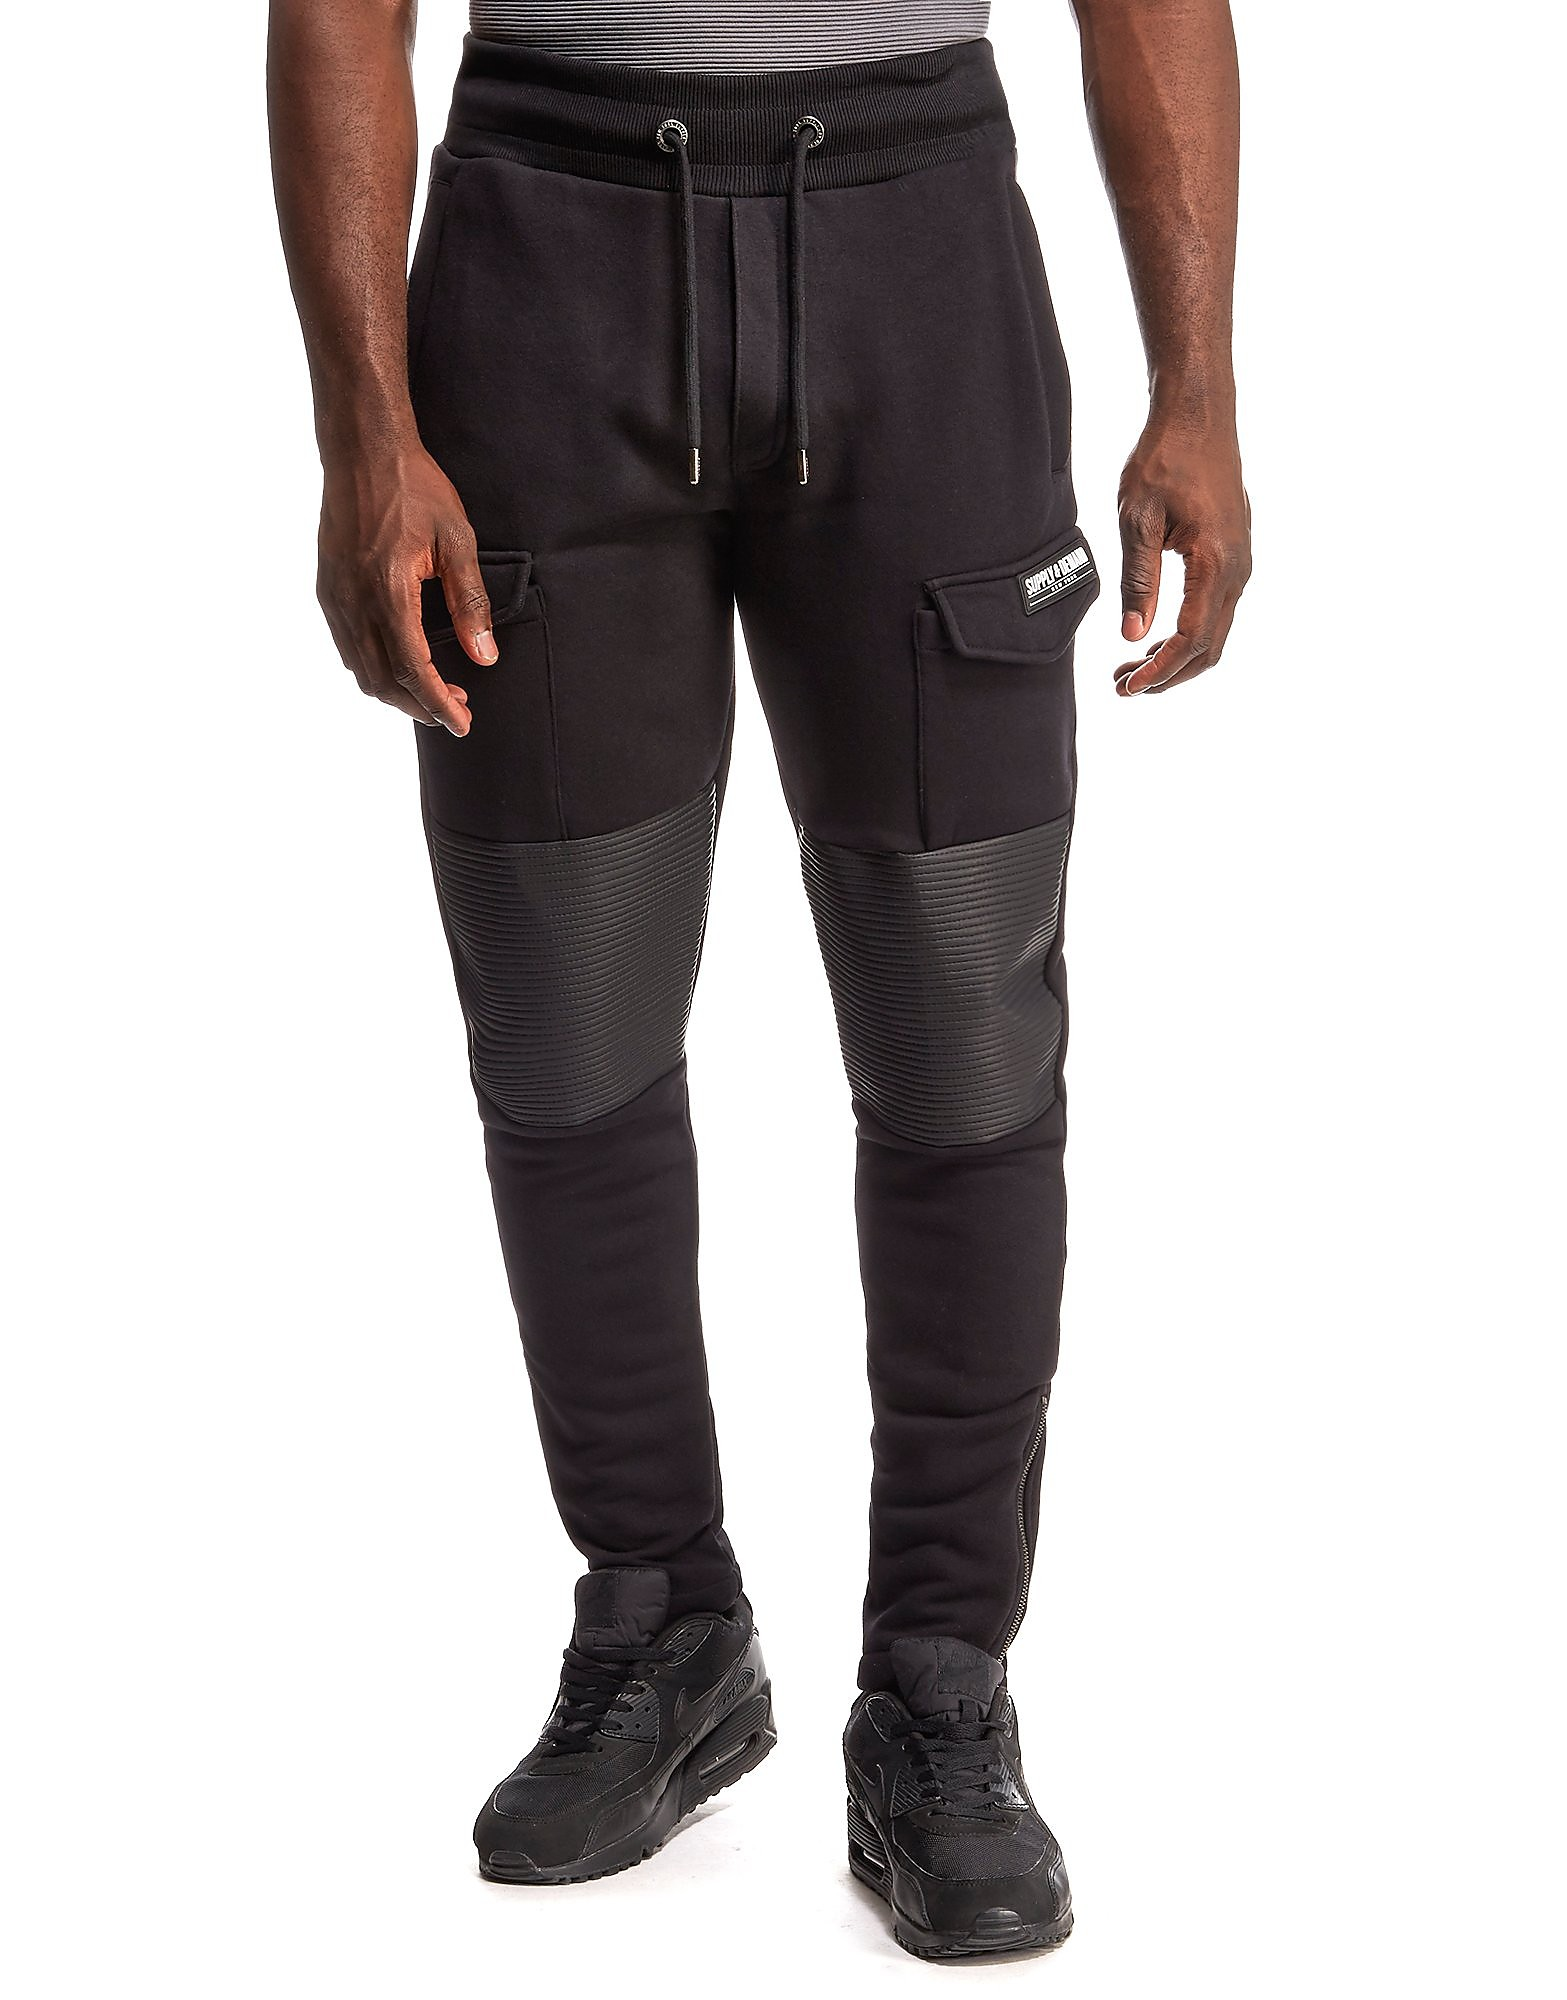 Supply & Demand Purpose Joggers